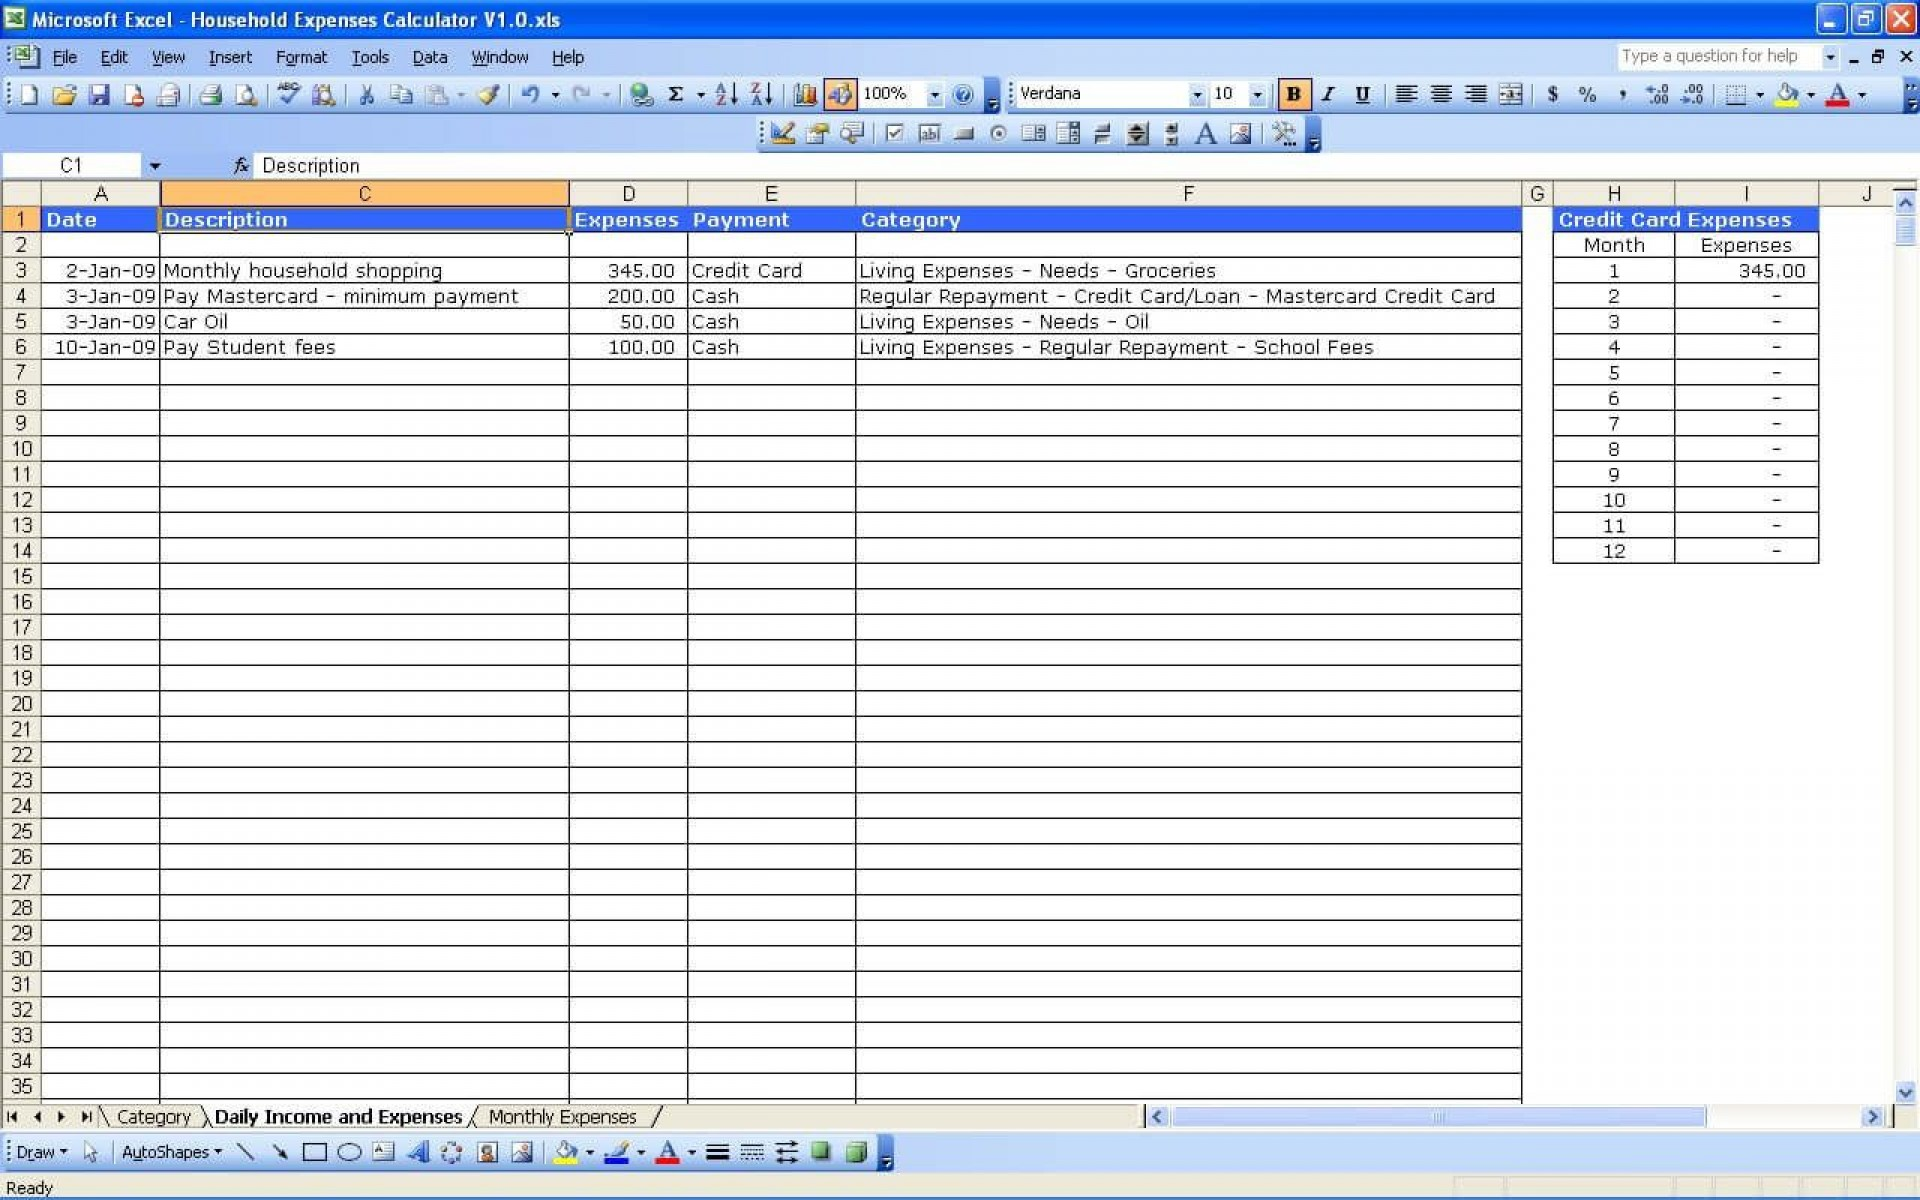 003 Fascinating Budget Tracker Excel Template Example  Wedding Personal Expense Free Project1920